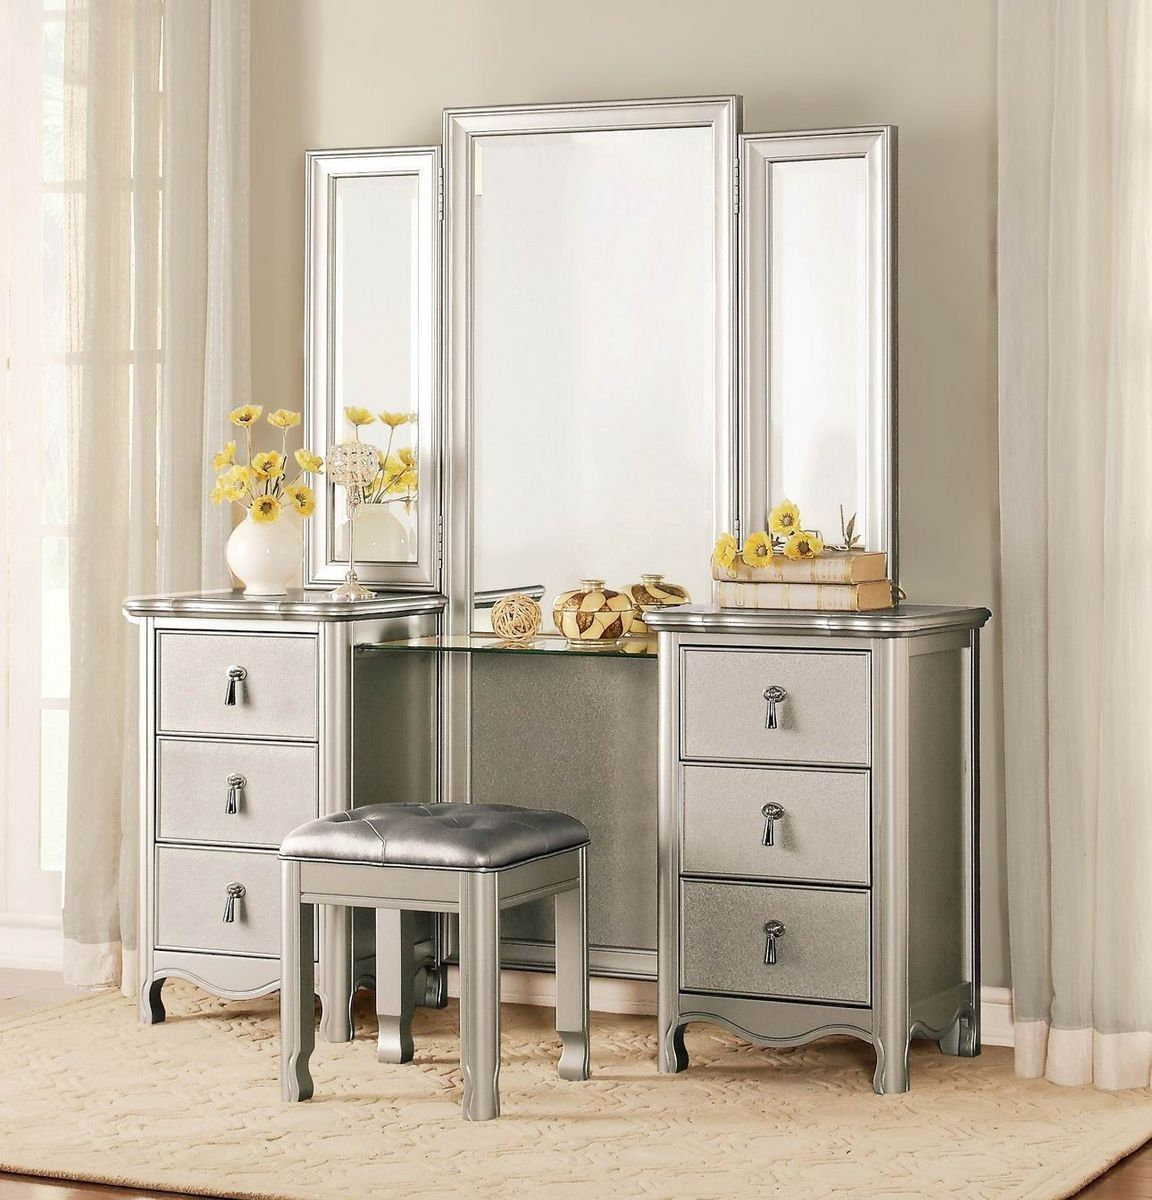 1901 15 Toulouse Tri Folding Mirror Champagne Wood Vanity Table Set